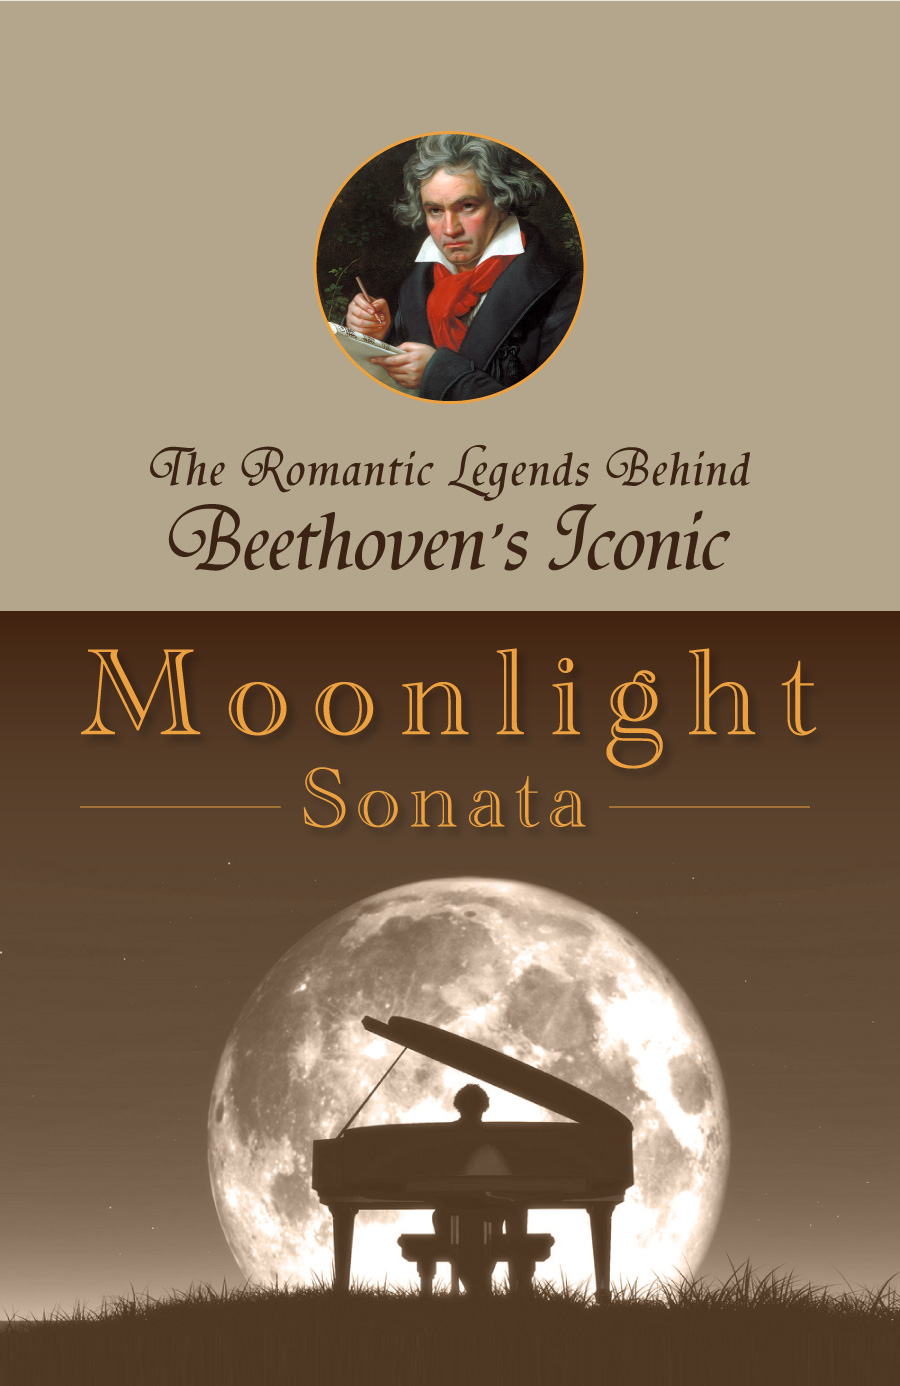 The romantic legends behind Beethoven's iconic Moonlight